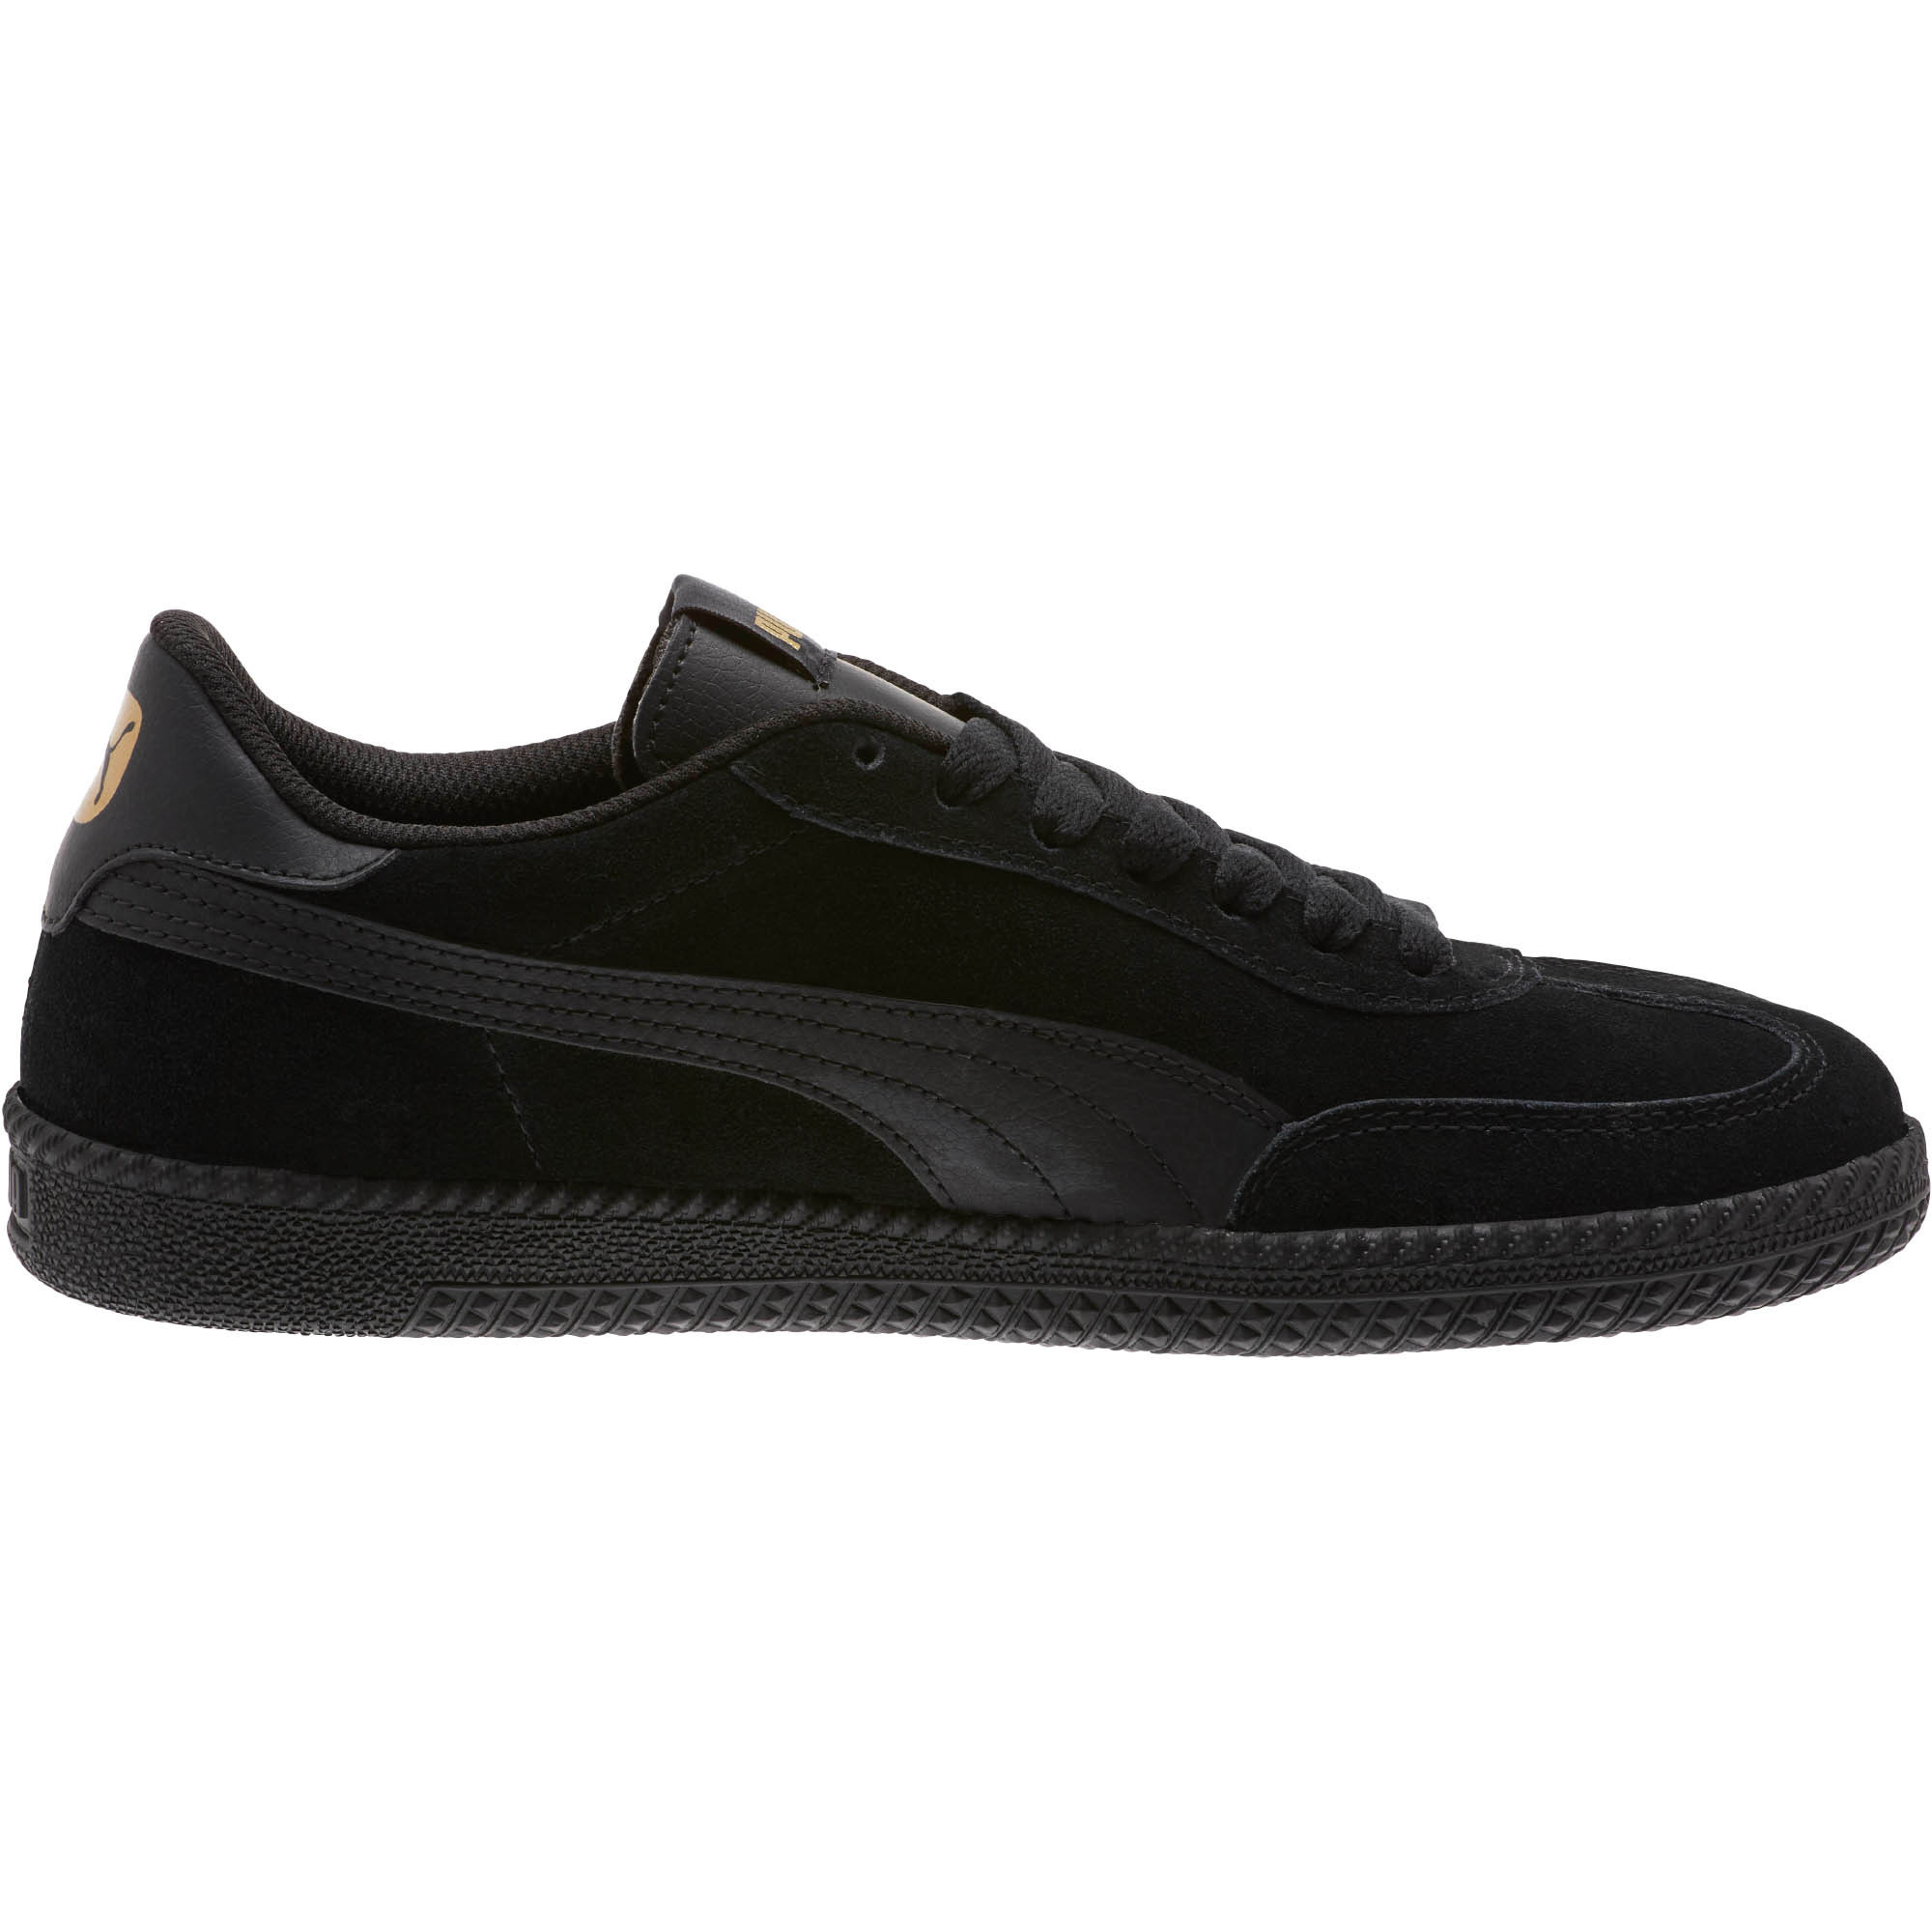 PUMA-Astro-Cup-Suede-Sneakers-Men-Shoe-Basics thumbnail 3